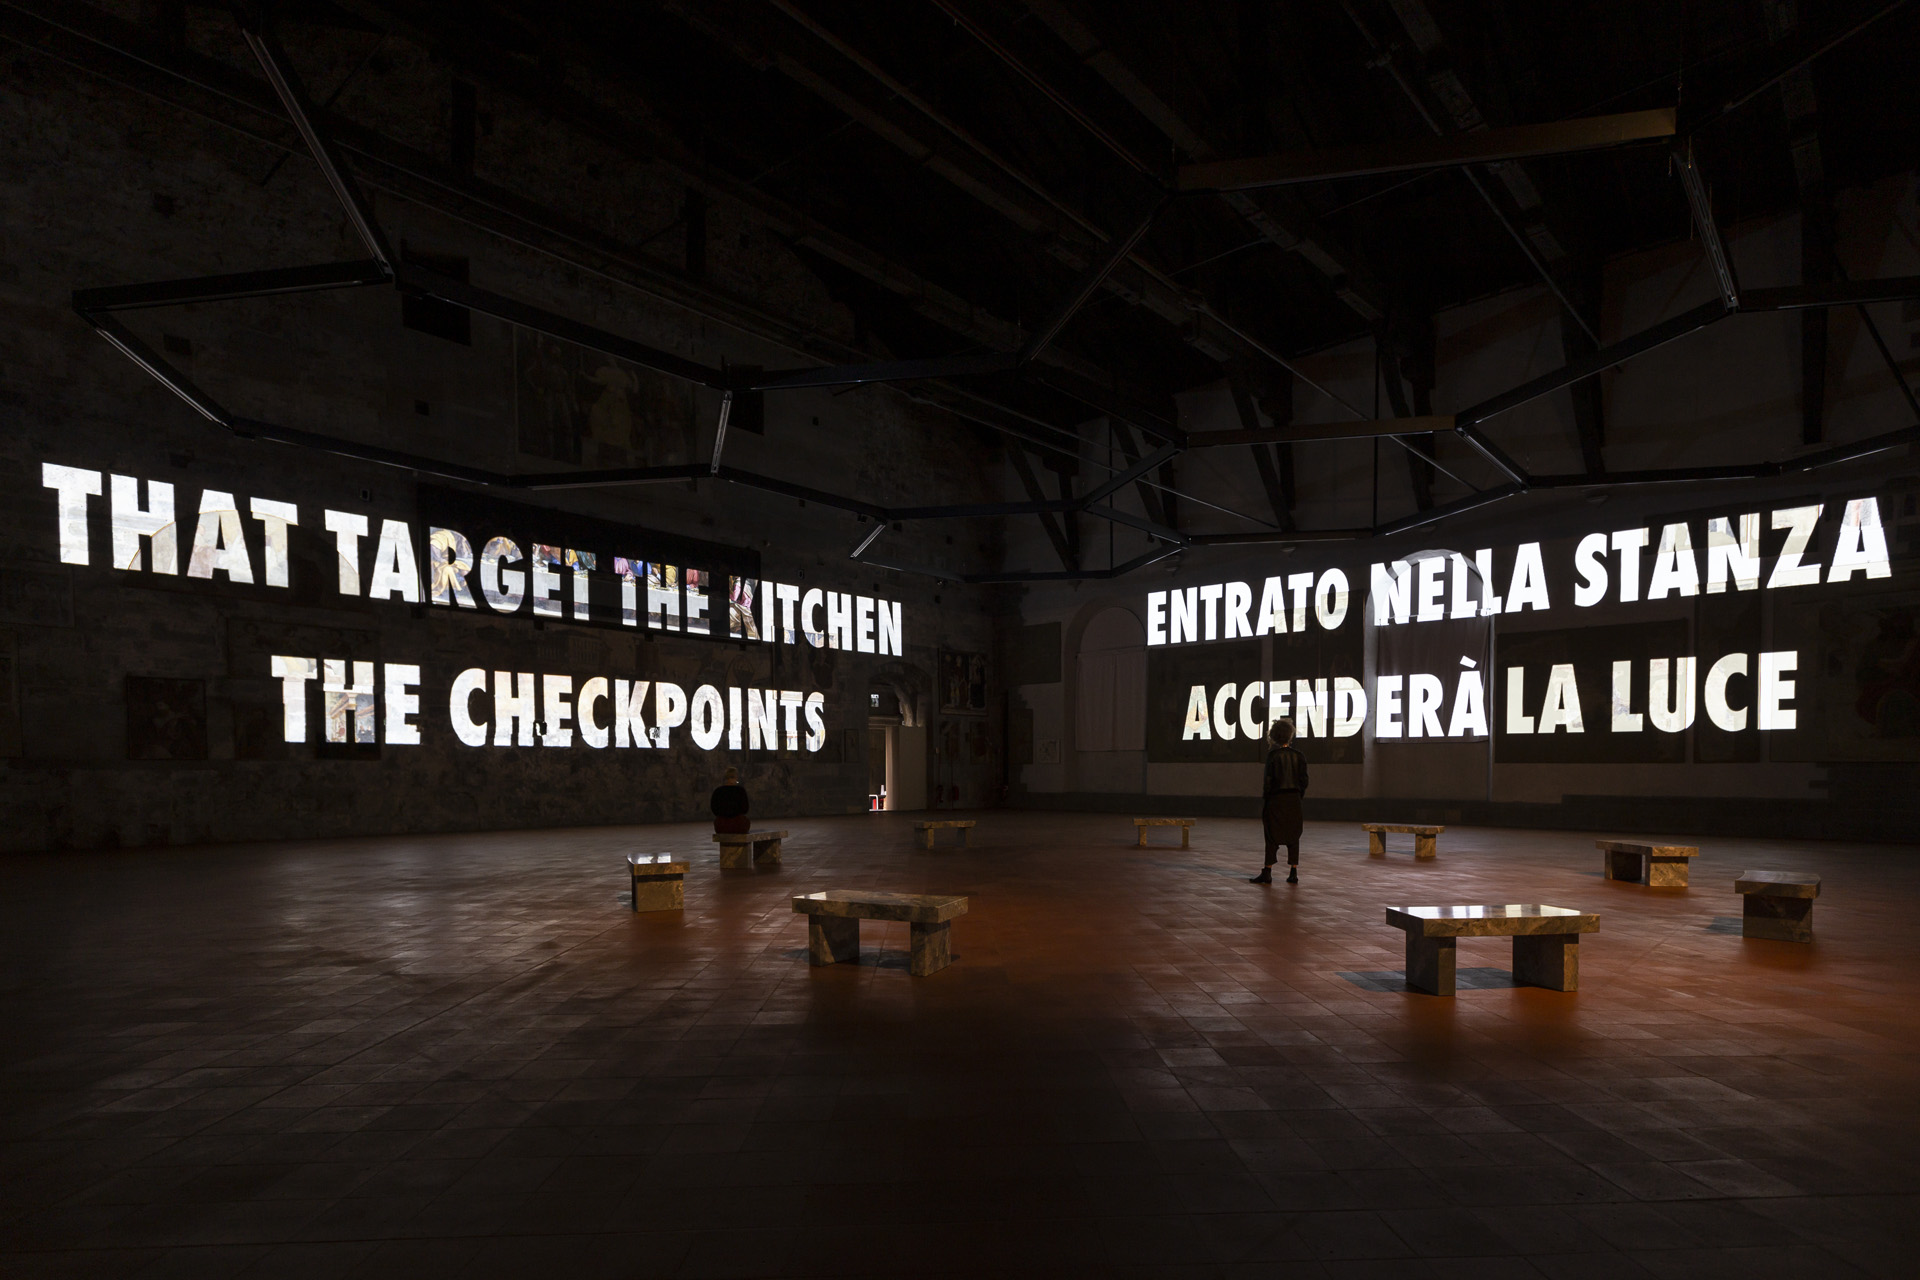 Tutta la Verità (The Whole Truth), GAMeC, Palazzo della Ragione, Bergamo, Italy, 2019 © 2019 Jenny Holzer, member Artists Rights Society (ARS), NY